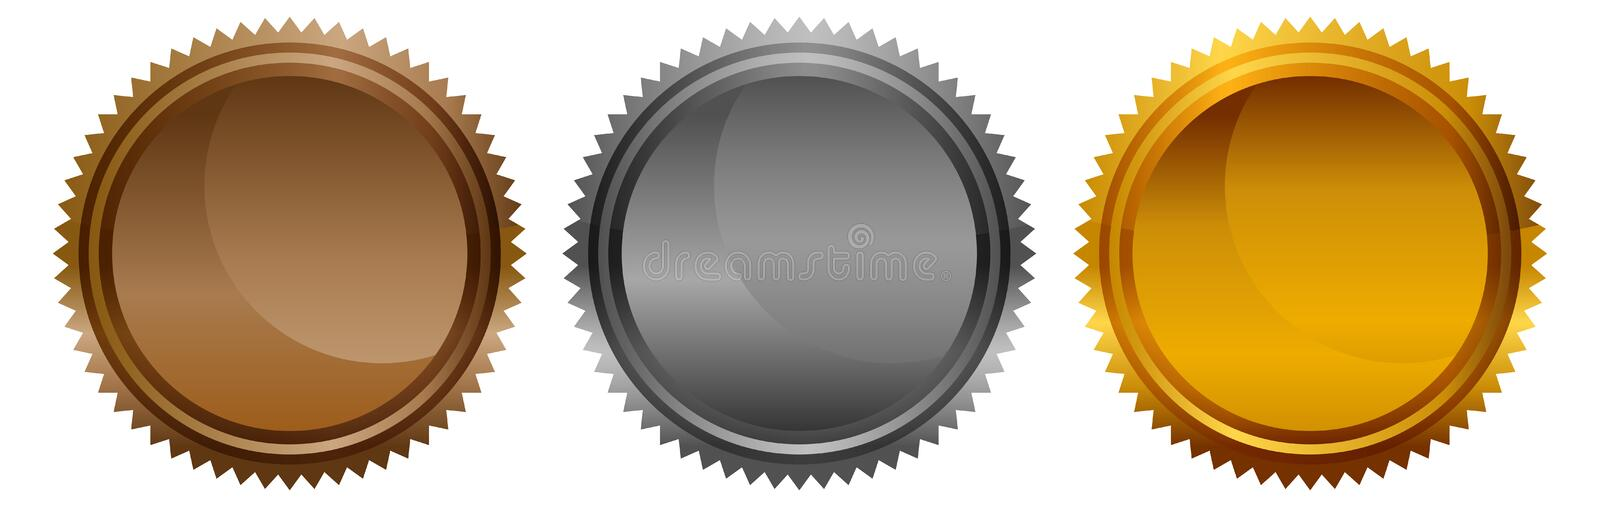 Blank Metal Bronze Gold Silver Star Round Coin Medals vector illustration